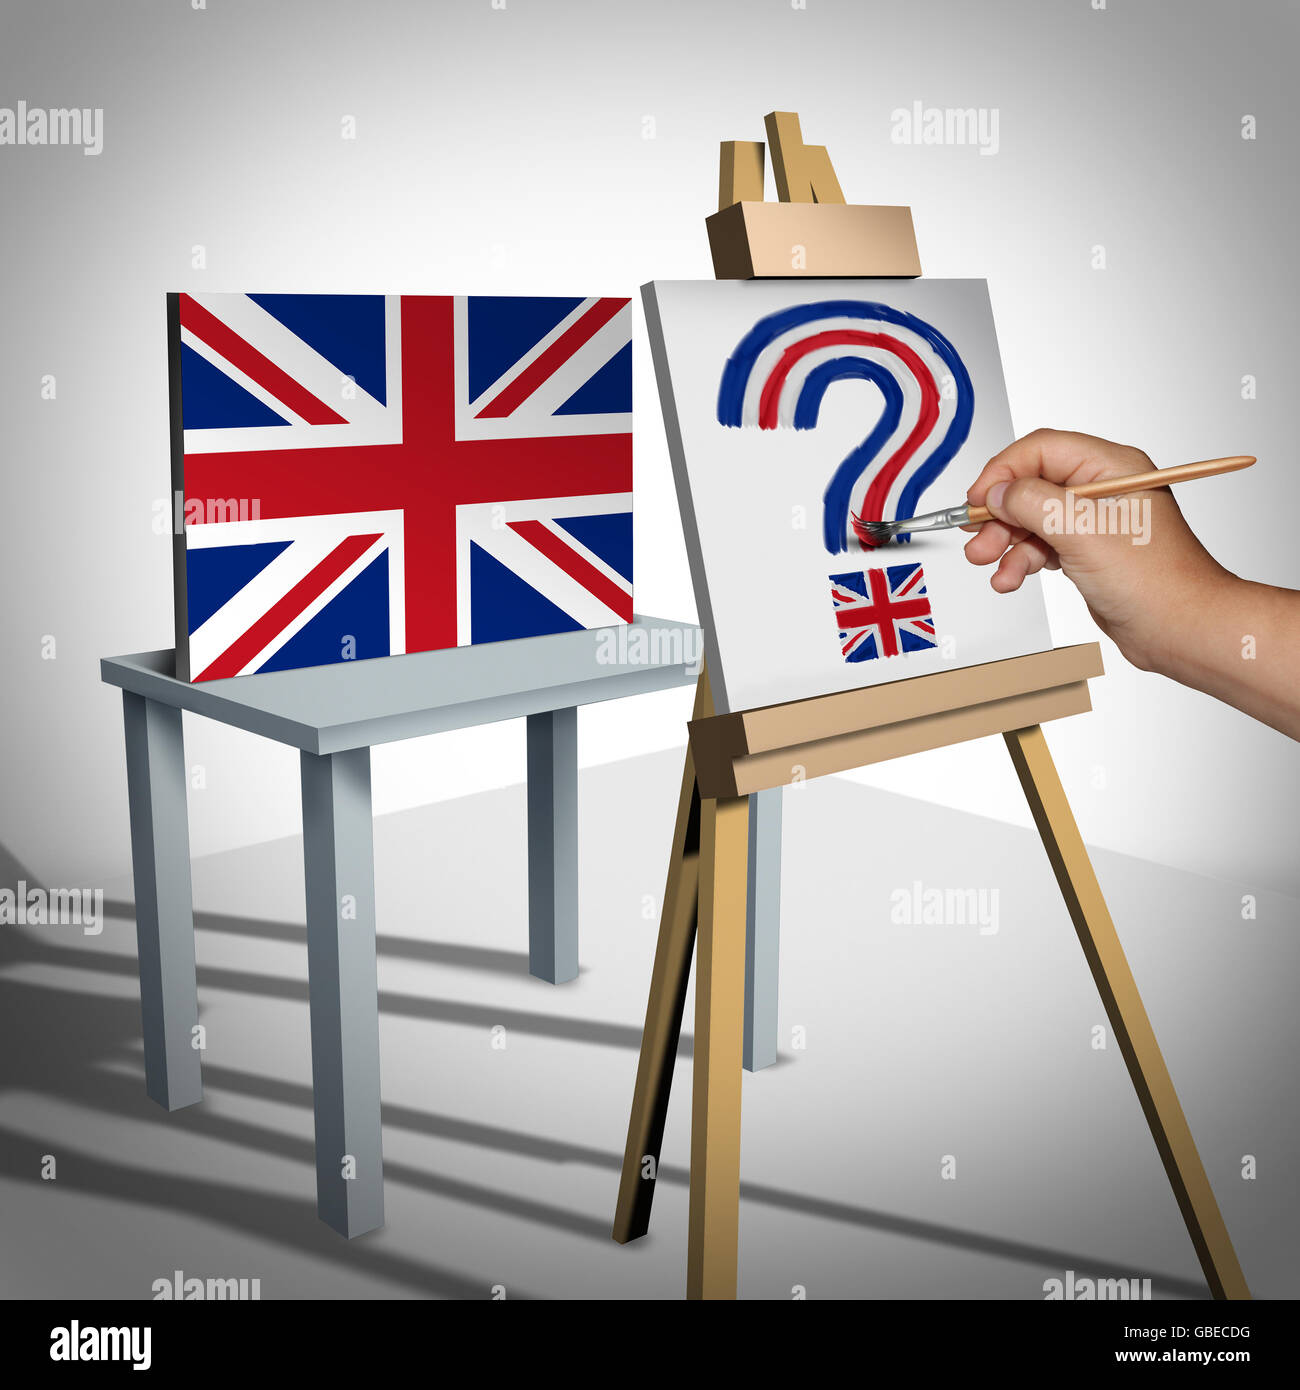 Britain or British uncertainty as a brexit concept representing the UK vote to leave or political confusion with - Stock Image